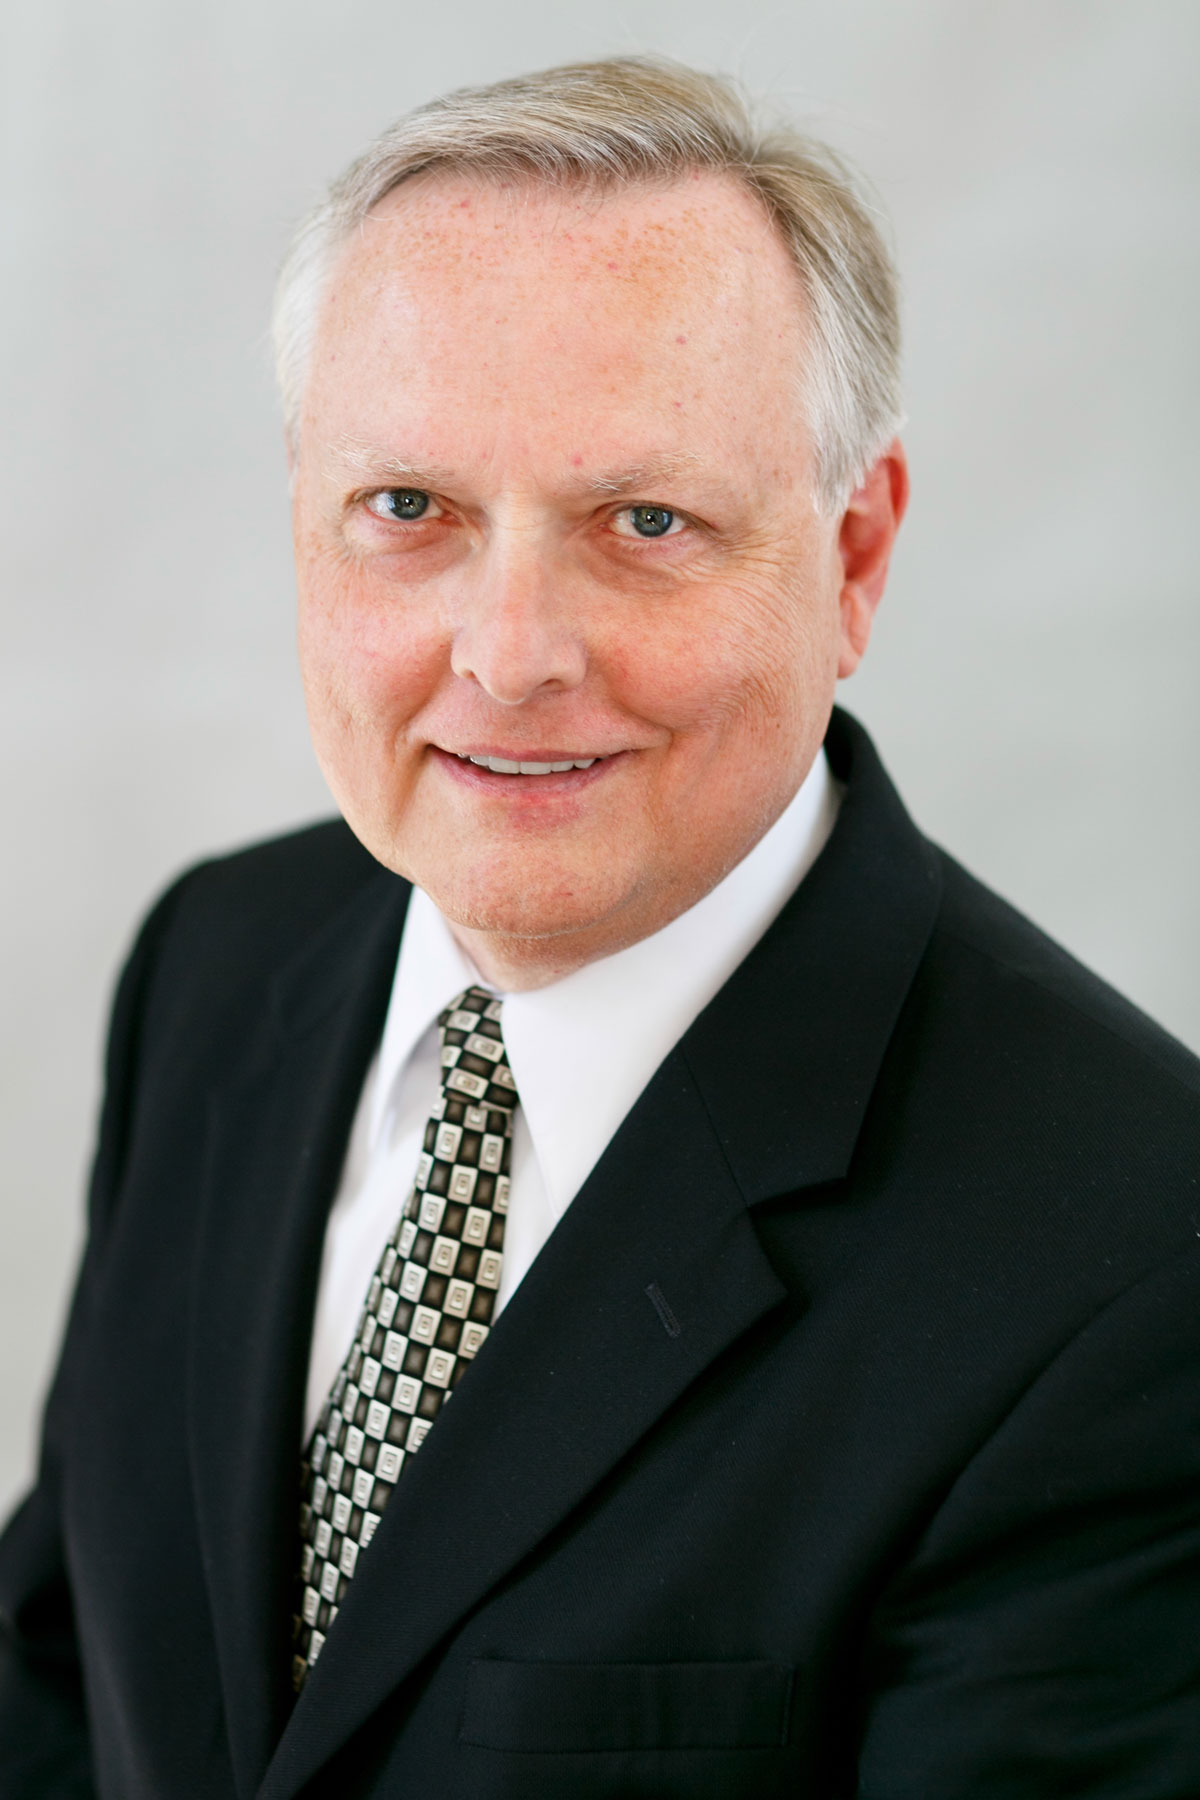 James Ray, CPA, CFP